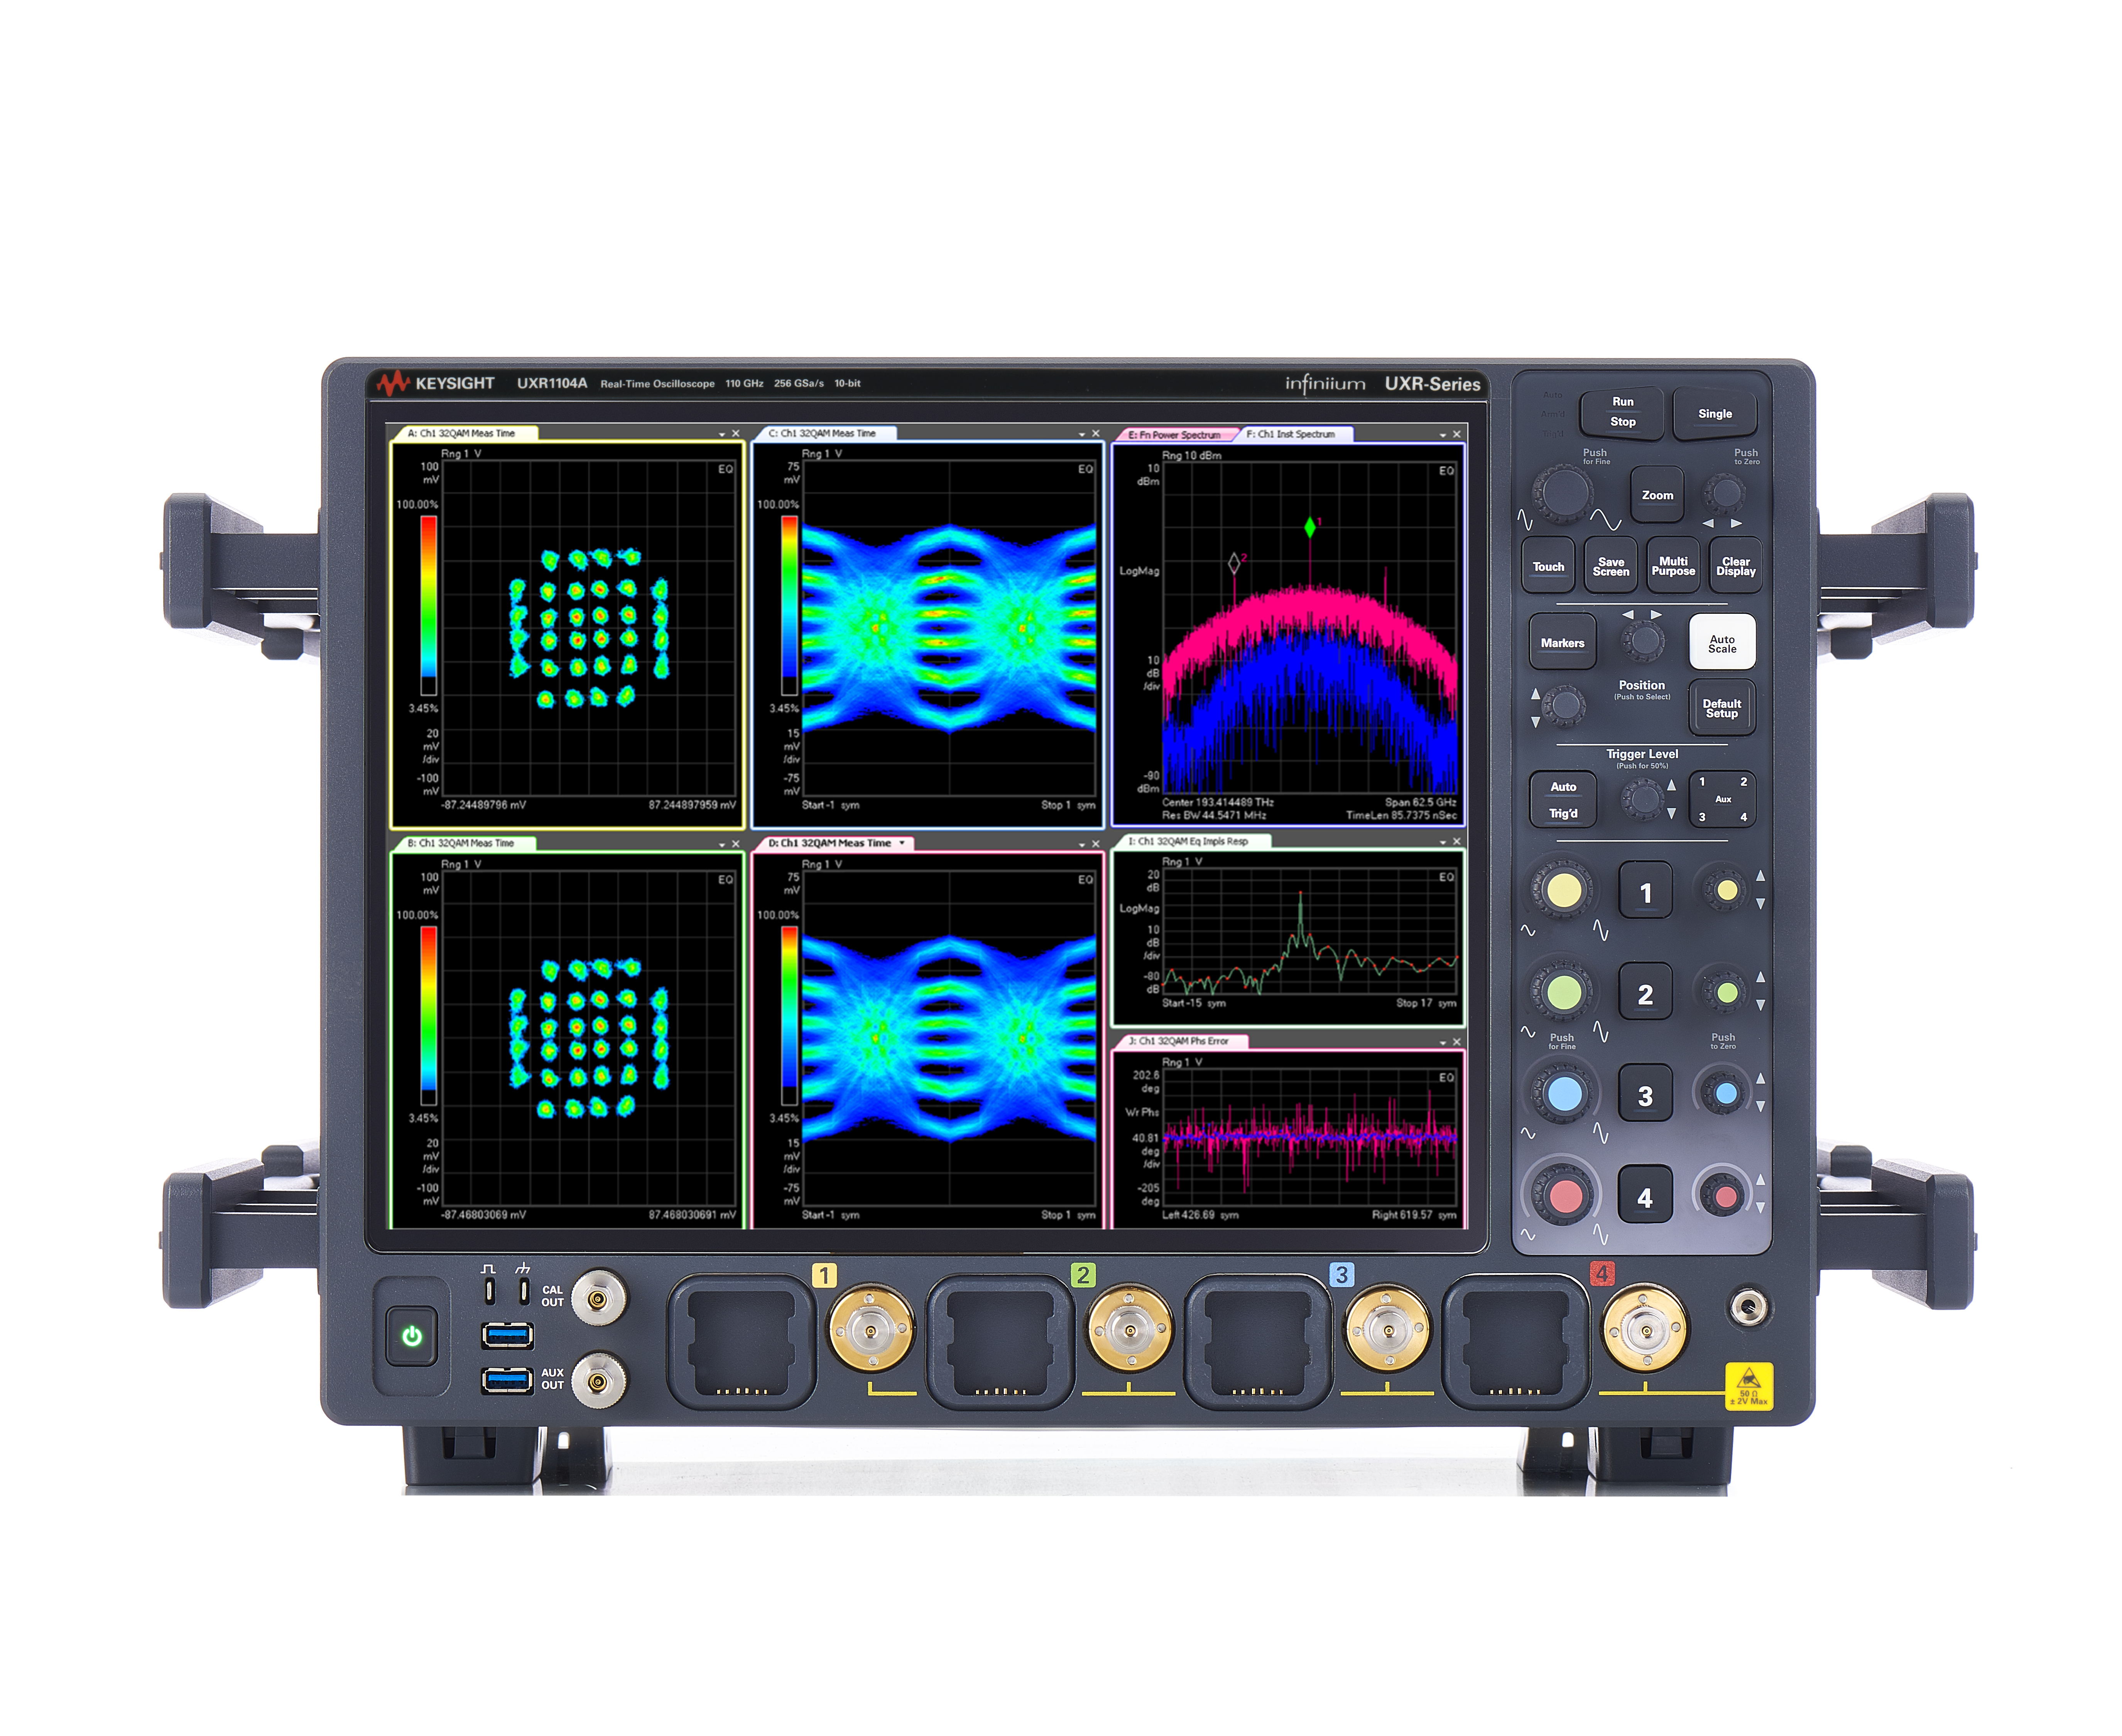 Keysight Infiniium Uxr Series Real Time Oscilloscopes Increase Internet Speed 100 Times Faster Using Photonic Integrated Circuit Uxr1104a Oscilloscope High Bandwidth 32 Qam